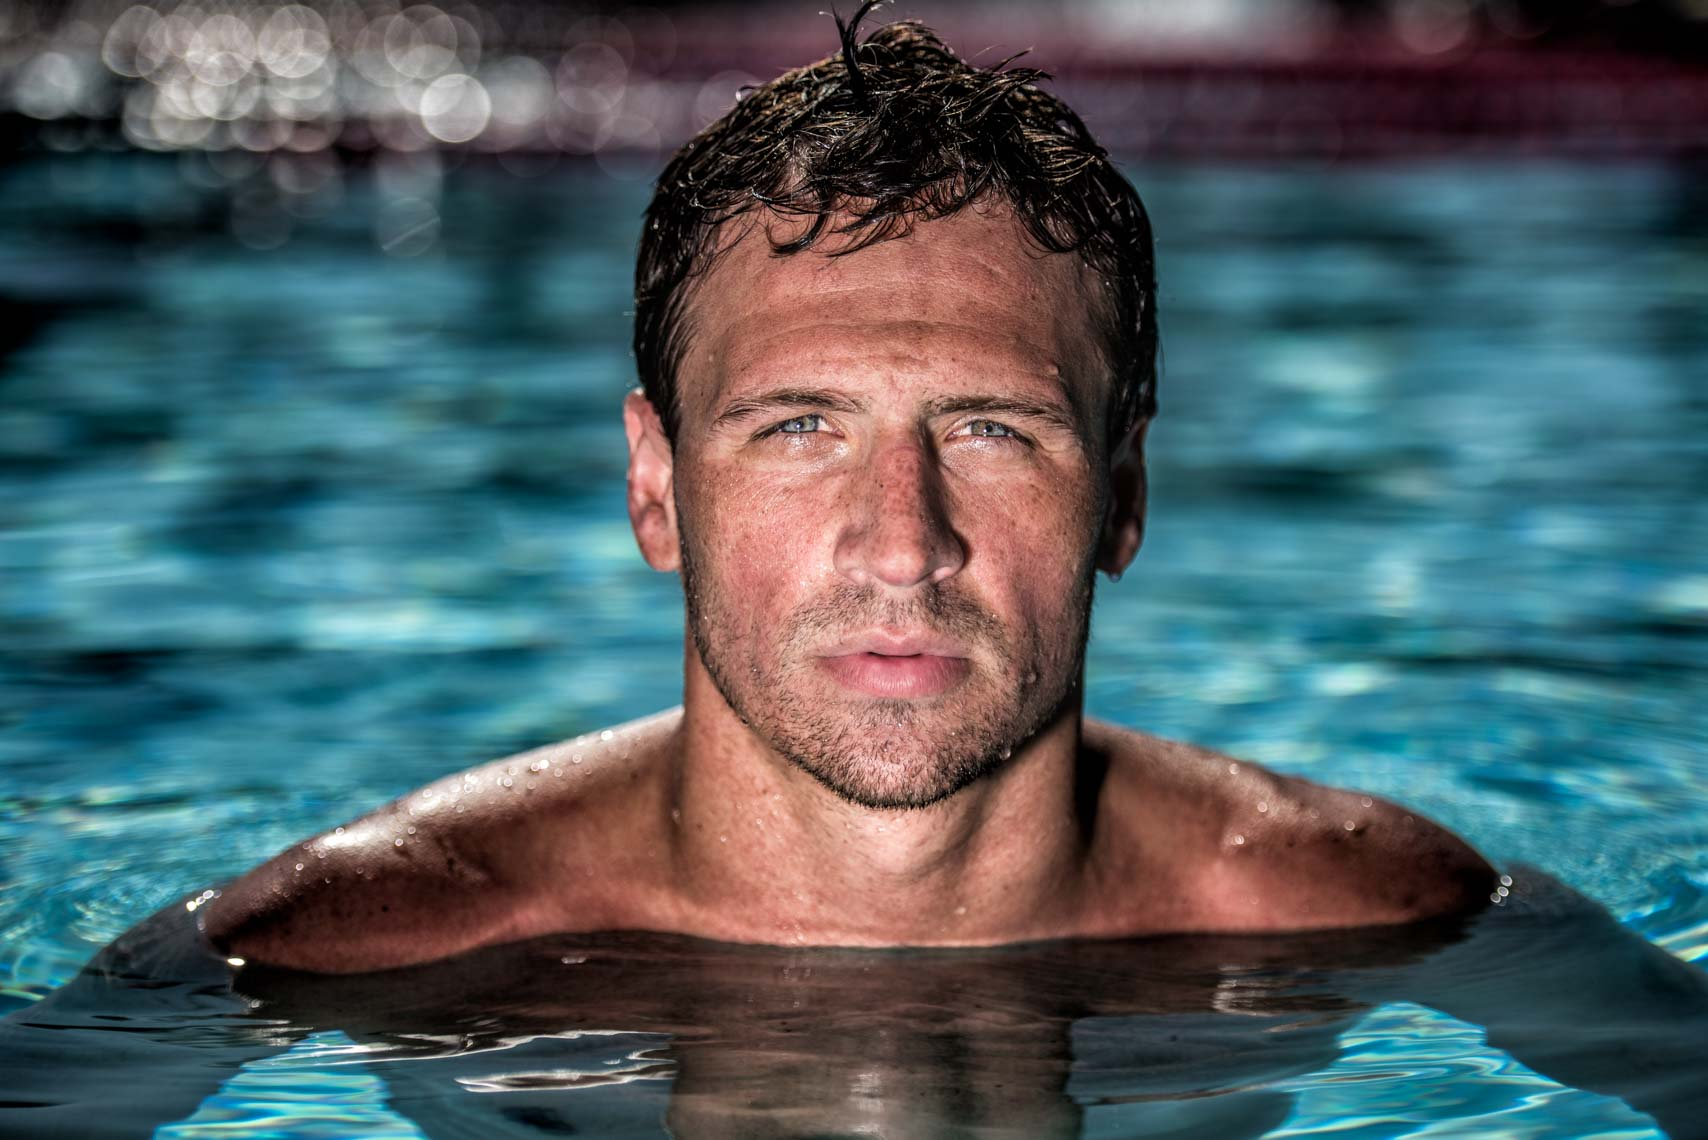 Ryan Lochte by Mike Lewis